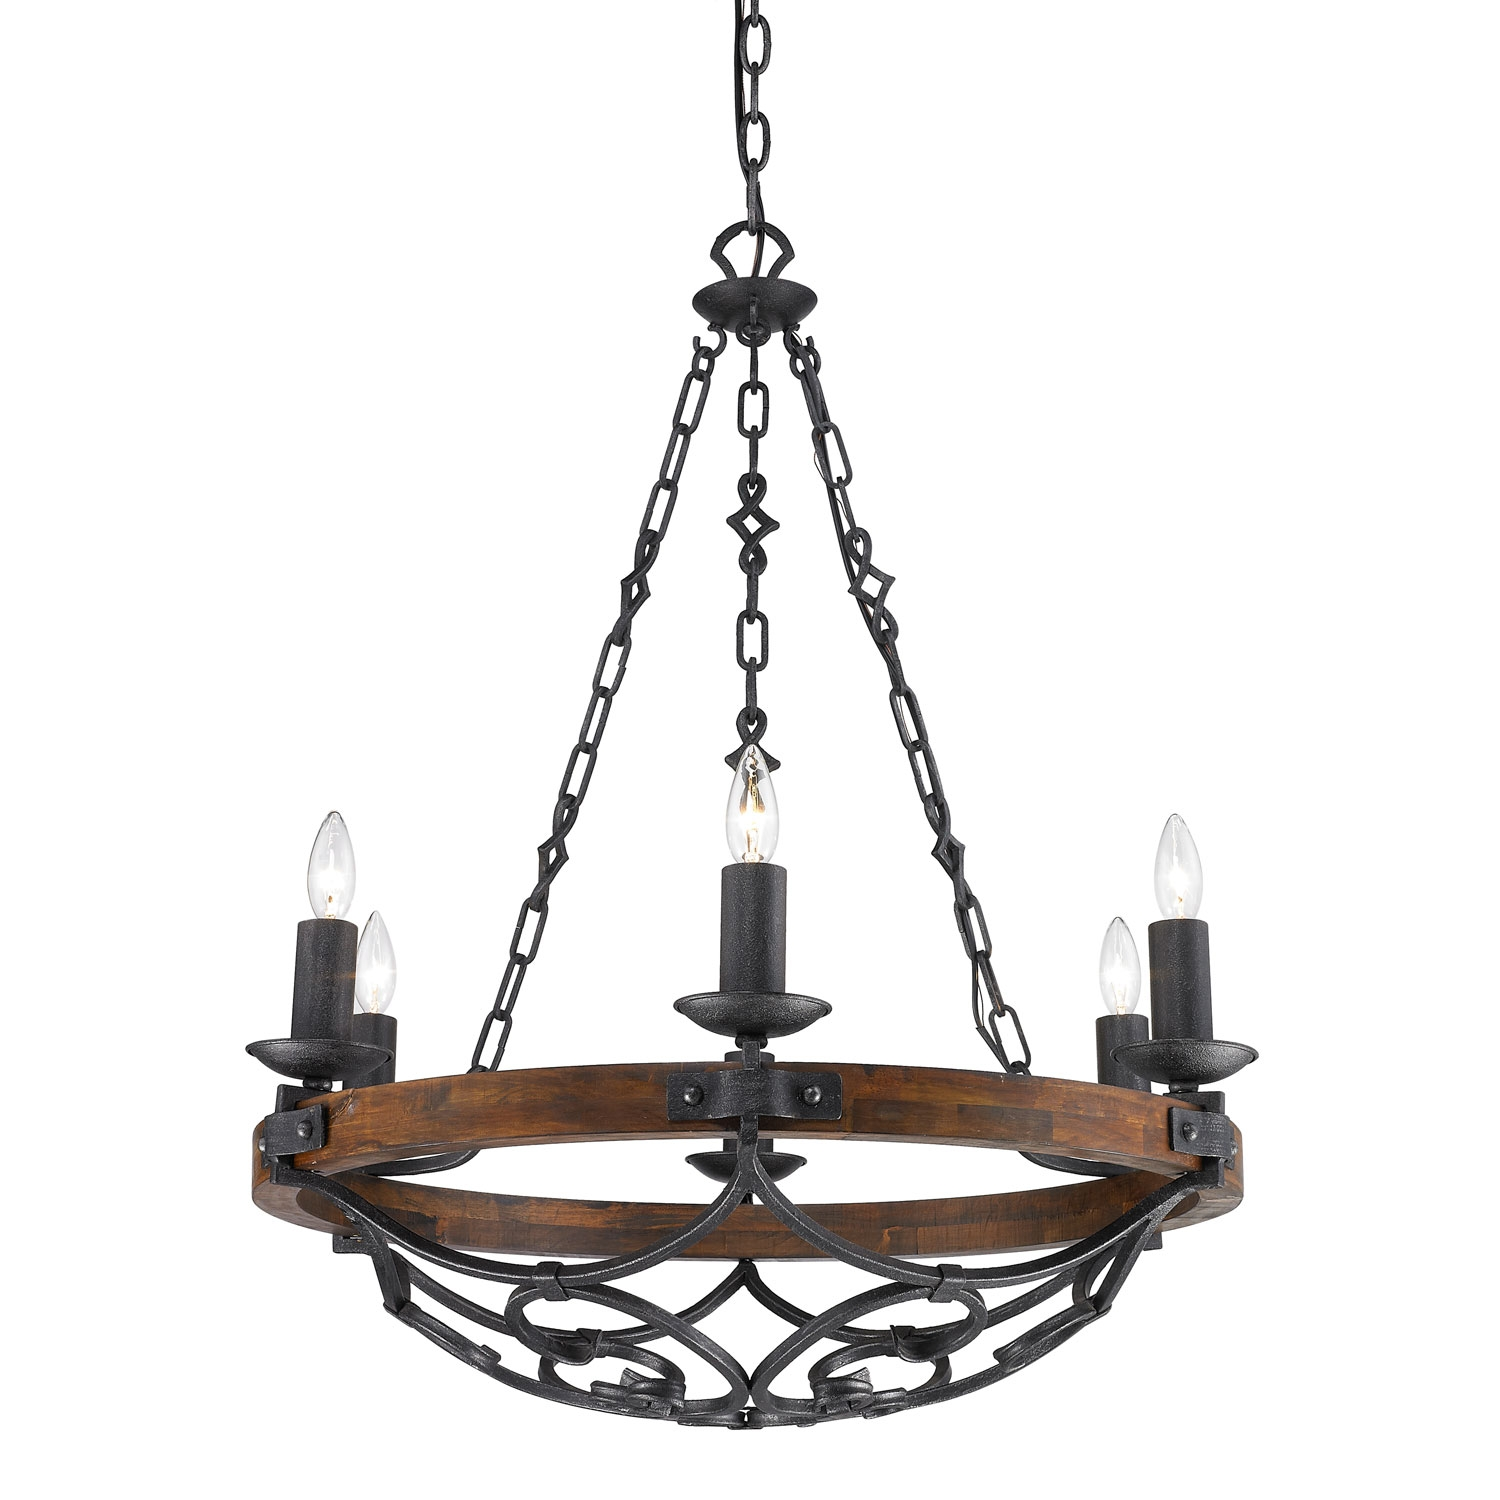 Large iron chandeliers chandelier ideas black chandeliers 500 crystal wrought iron mini chandeliers inside large iron chandeliers image 3 of arubaitofo Choice Image